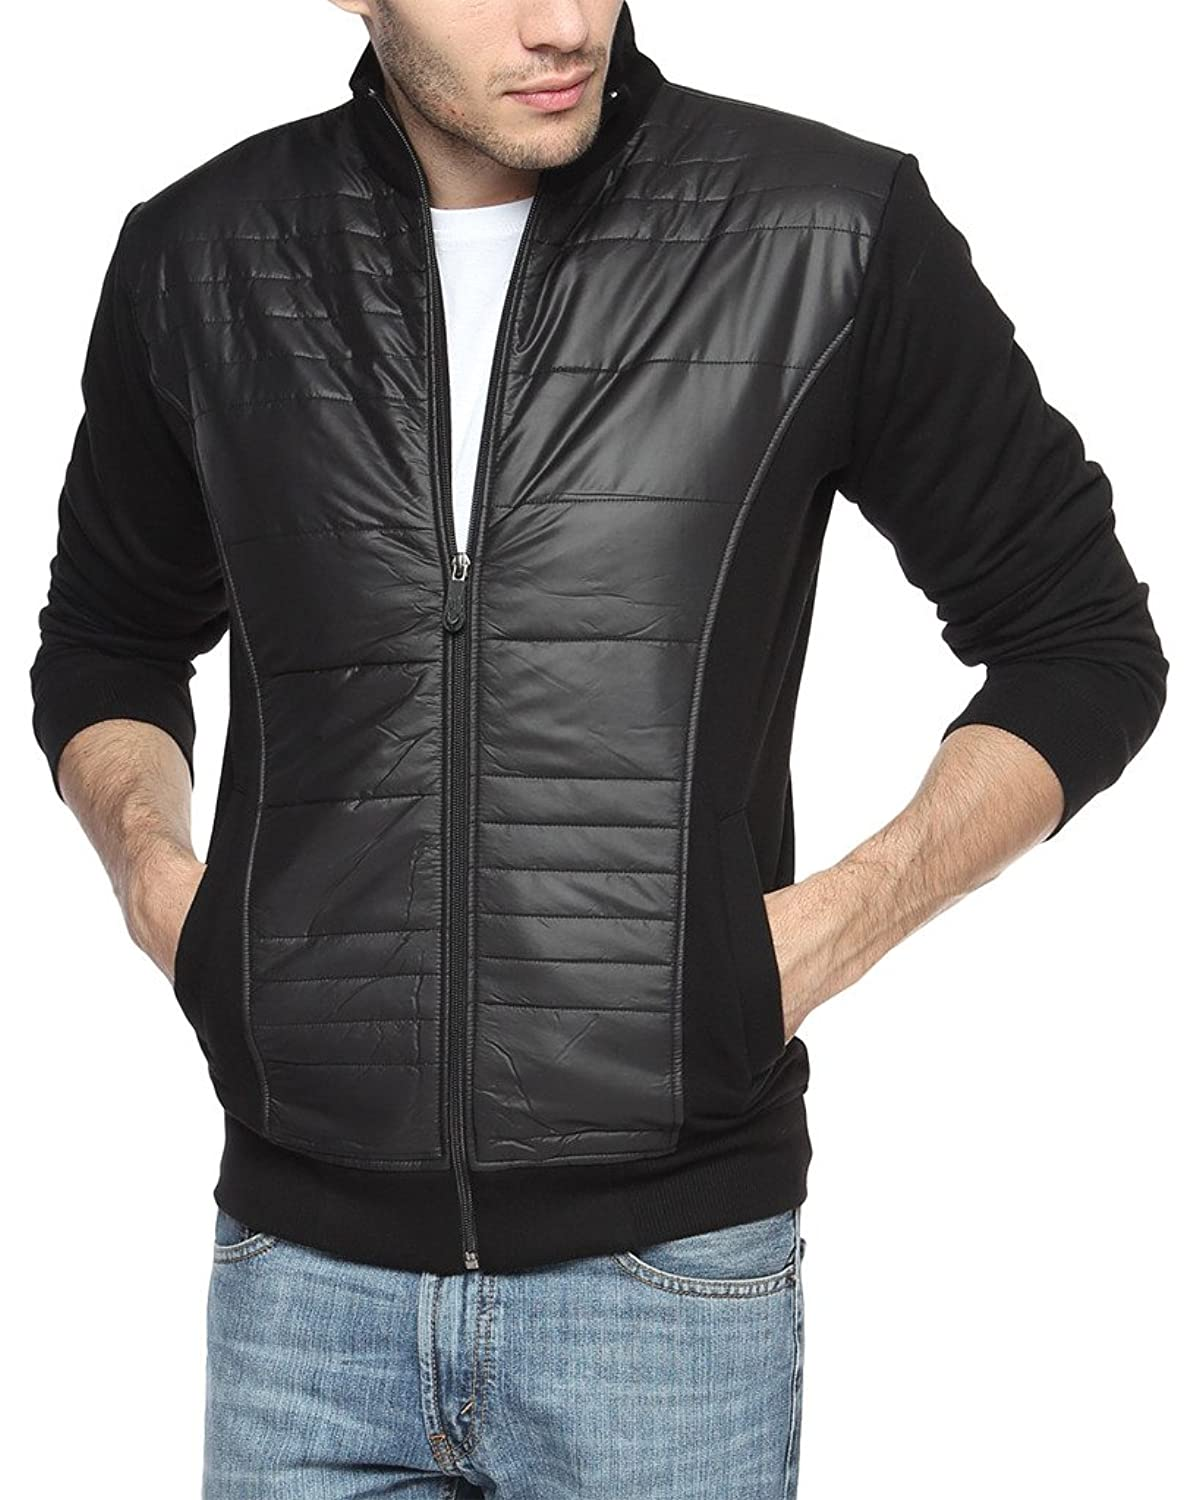 Men&39s Jackets : Buy Leather and Winter Jackets for Men Online at